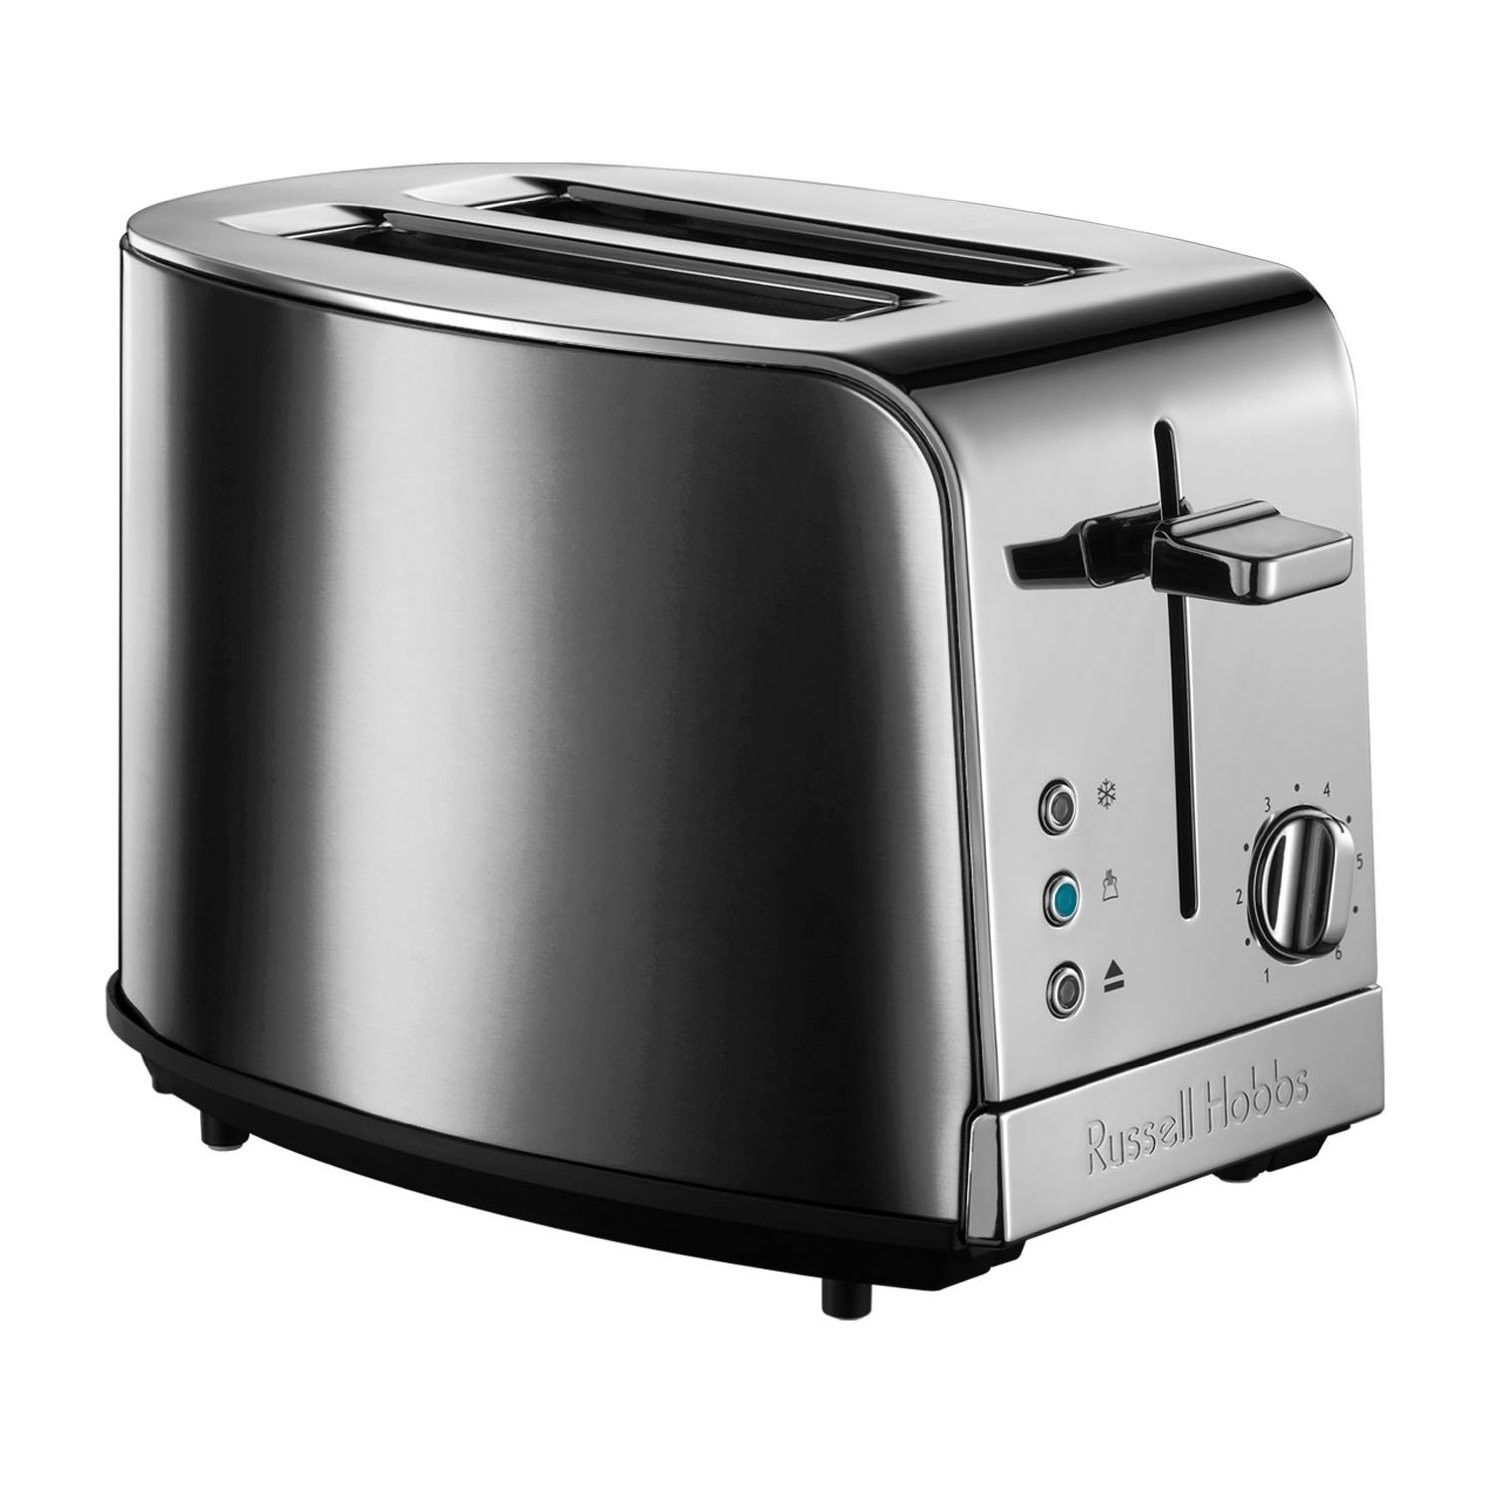 Prajitor De Paine Russell Hobbs Jewels 21782-56 1050w  Moonstone Grey